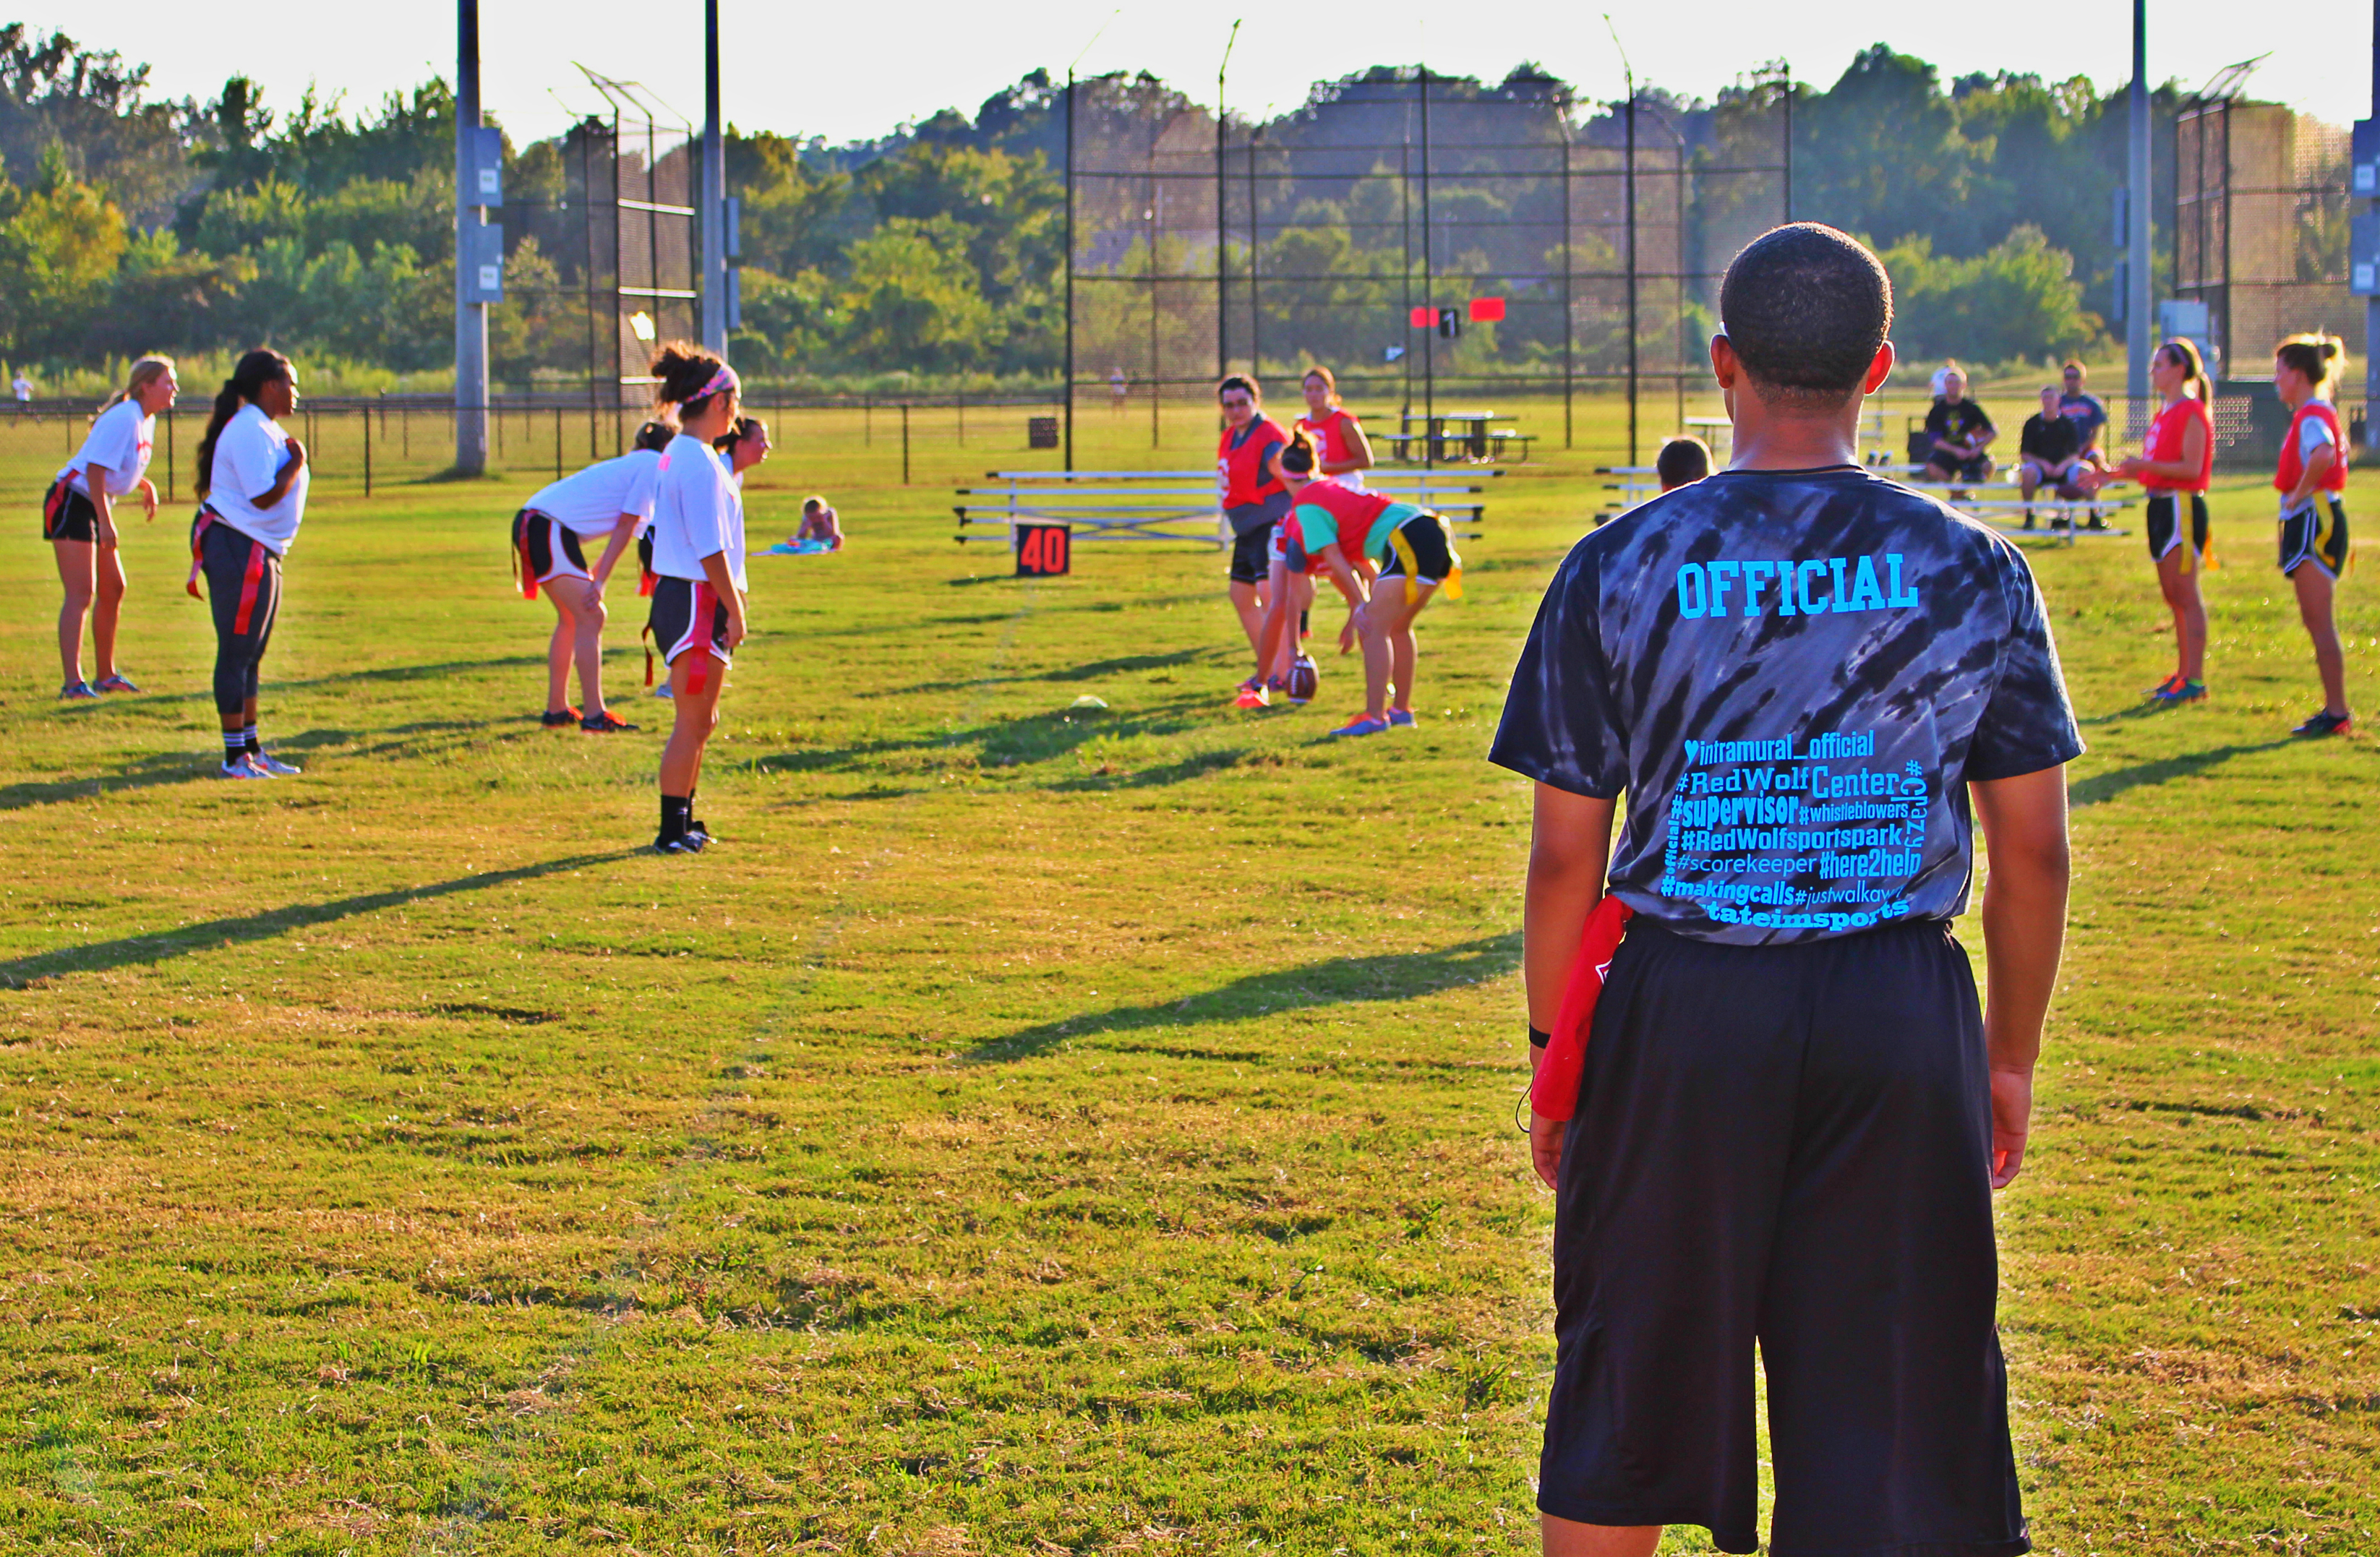 Picture of referee and players during flag football